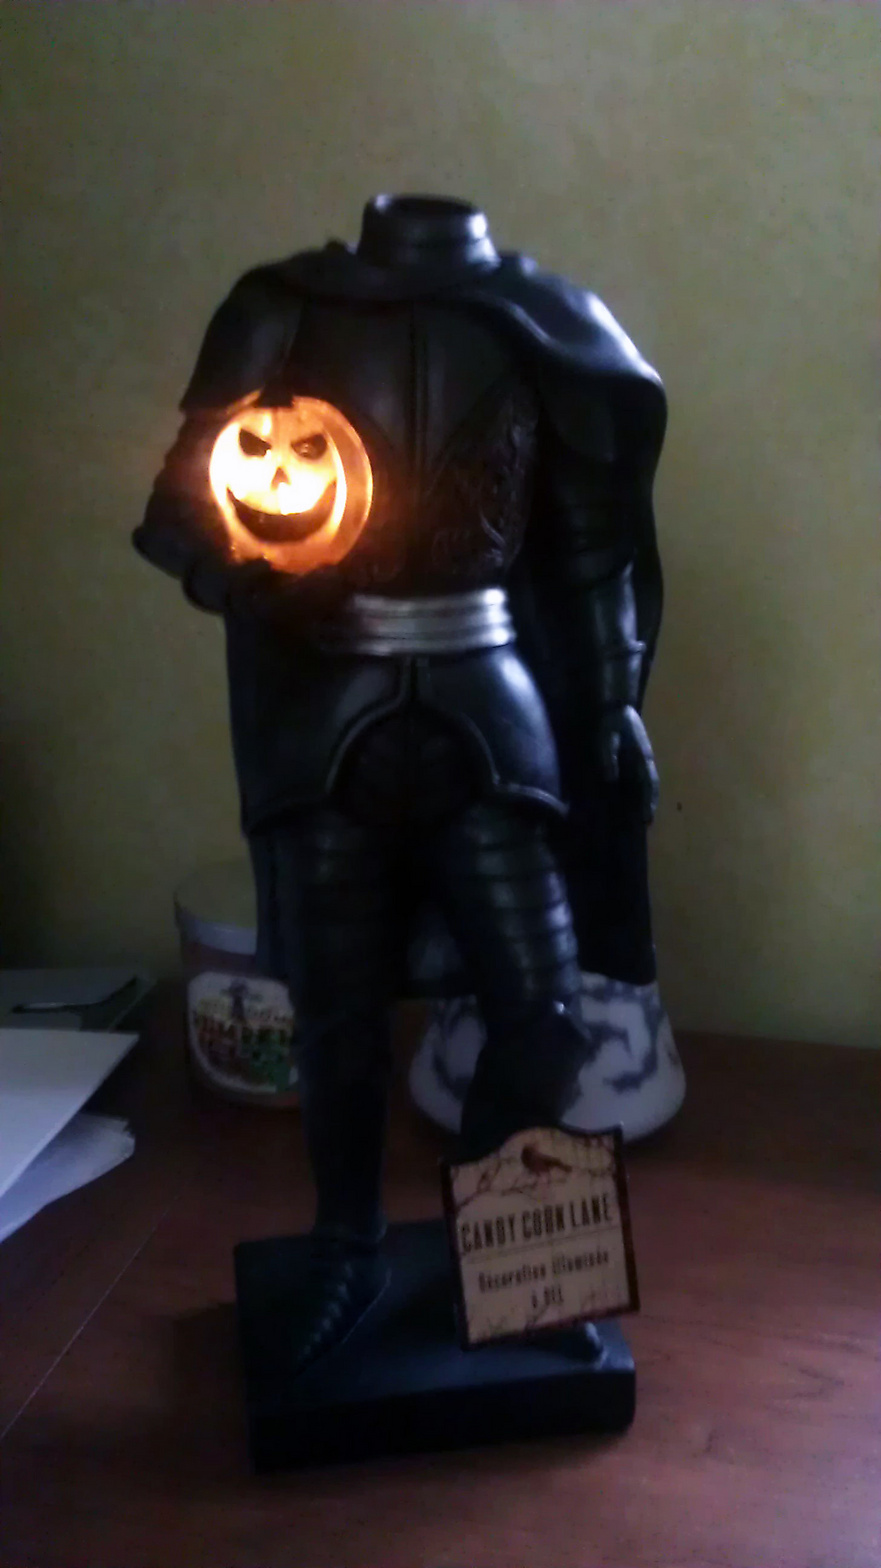 http://www.halloweenforum.com/general-halloween/136251-home-goods-2014-a-29.html